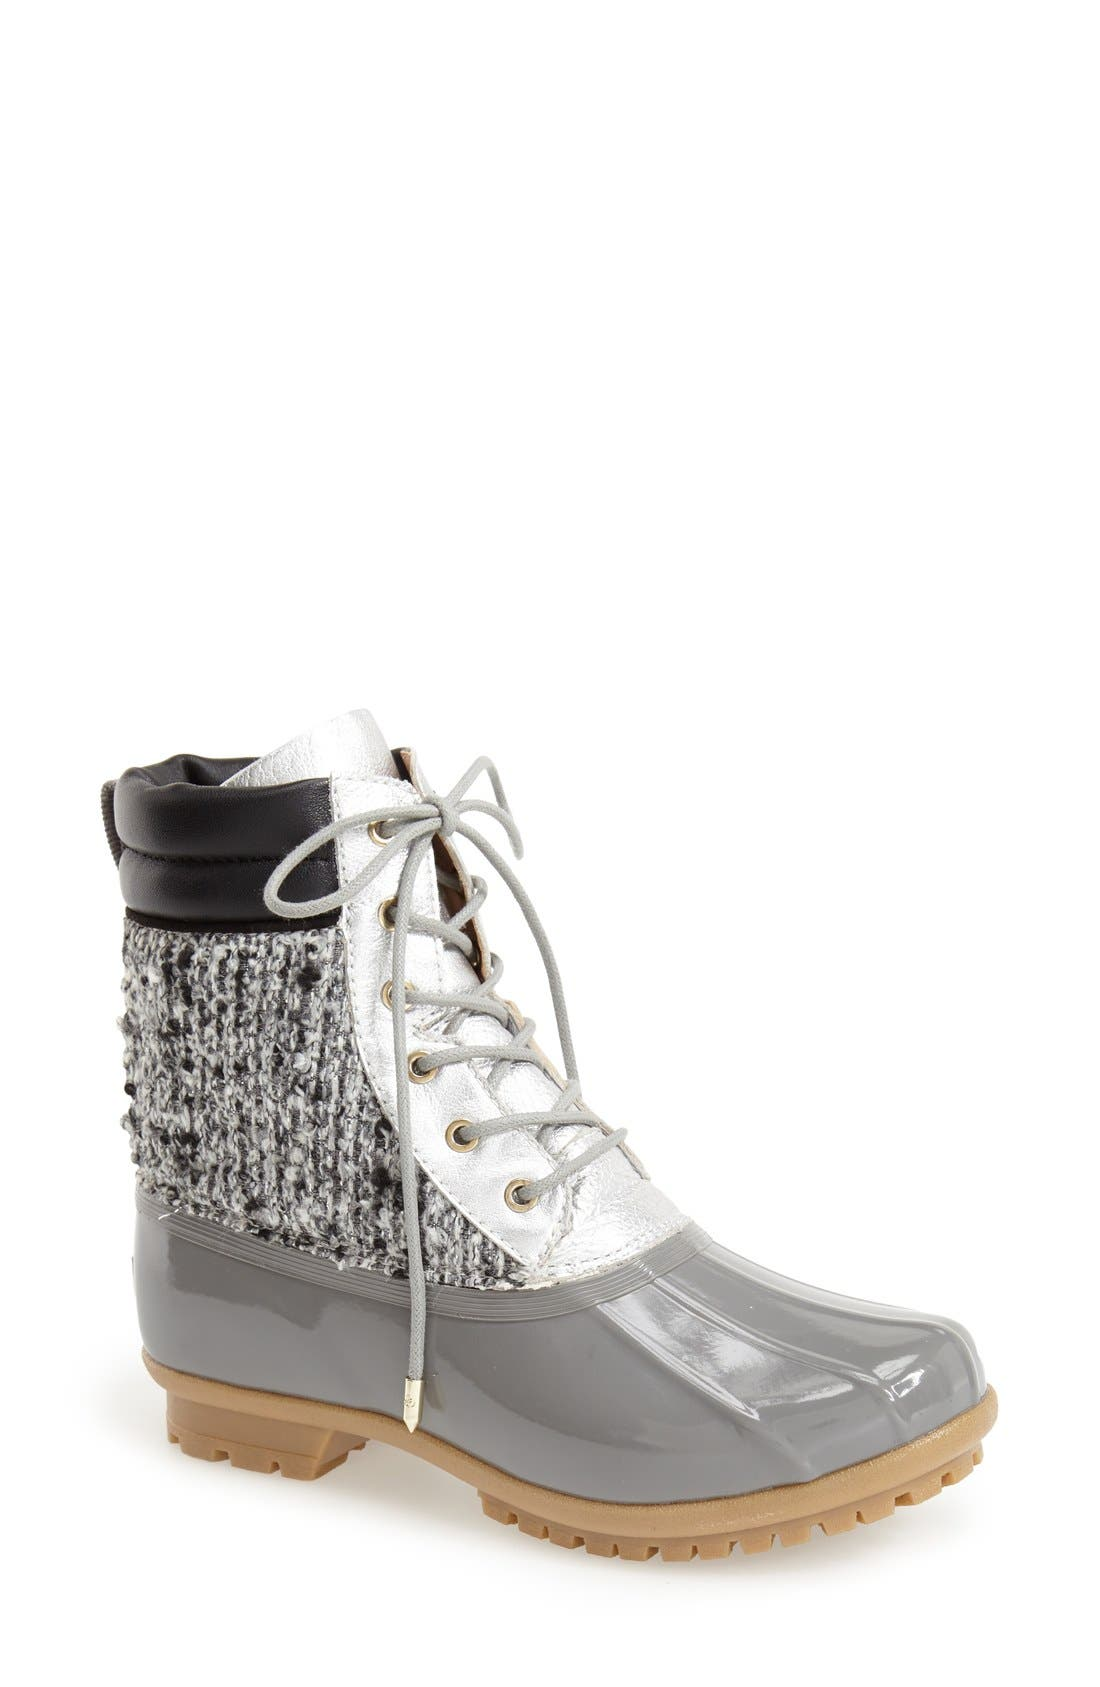 Alternate Image 1 Selected - Sam Edelman 'Caldwell' Rain Boot (Women)